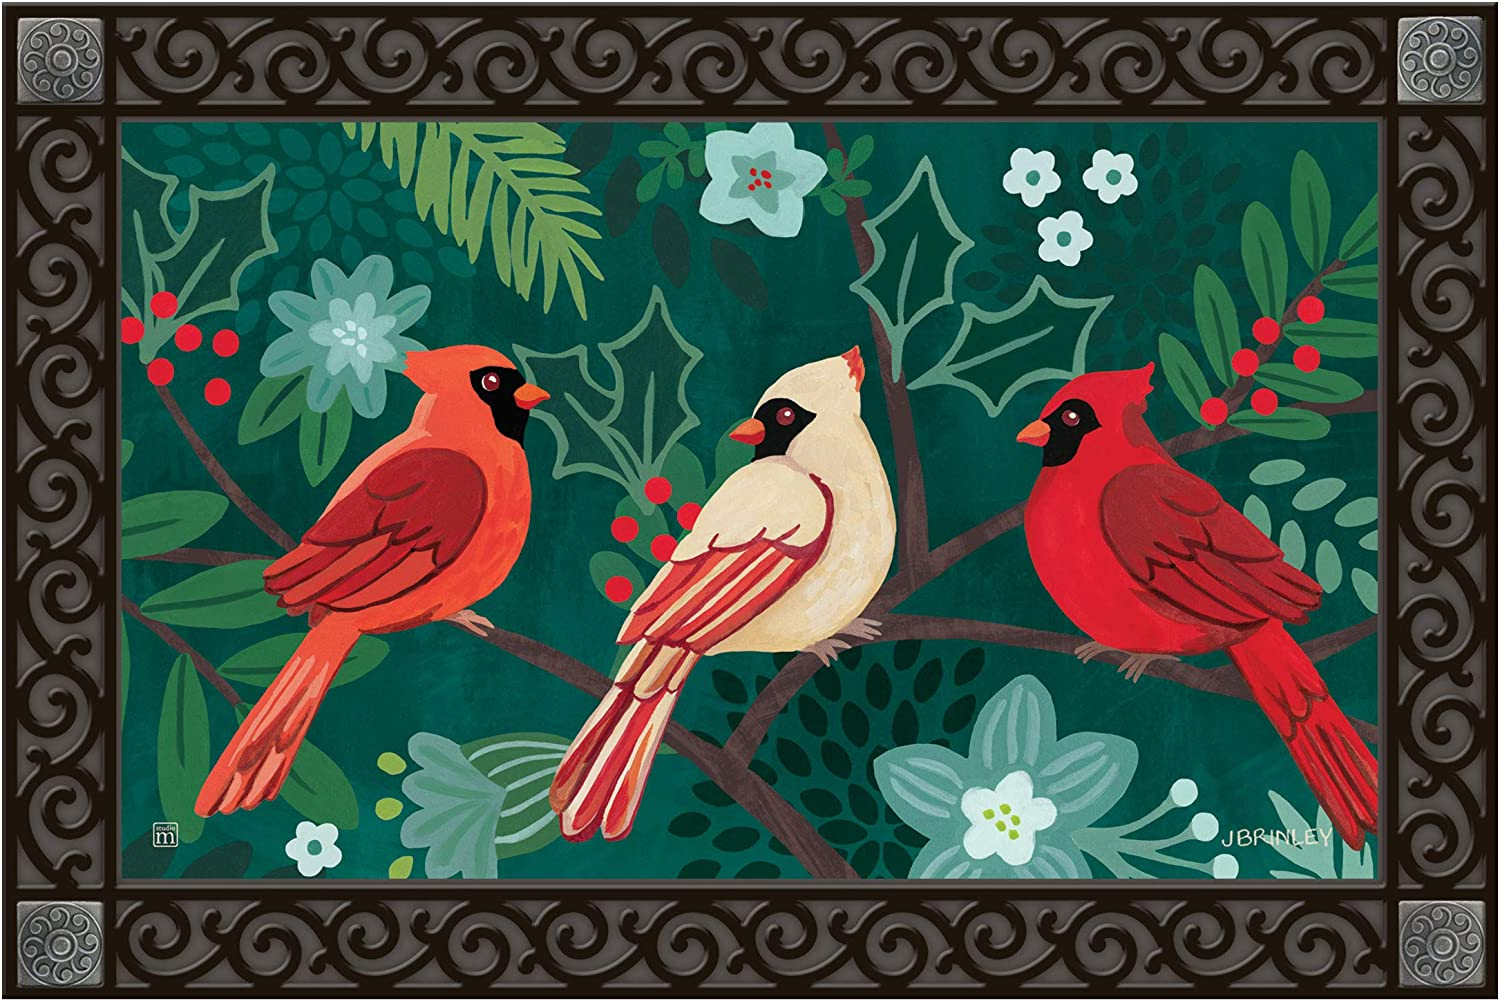 Studio M Boho Cardinals Fall/Winter MatMates Decorative Floor Mat Indoor or Outdoor Doormat with Eco-Friendly Recycled Rubber Backing, 18 x 30 Inches